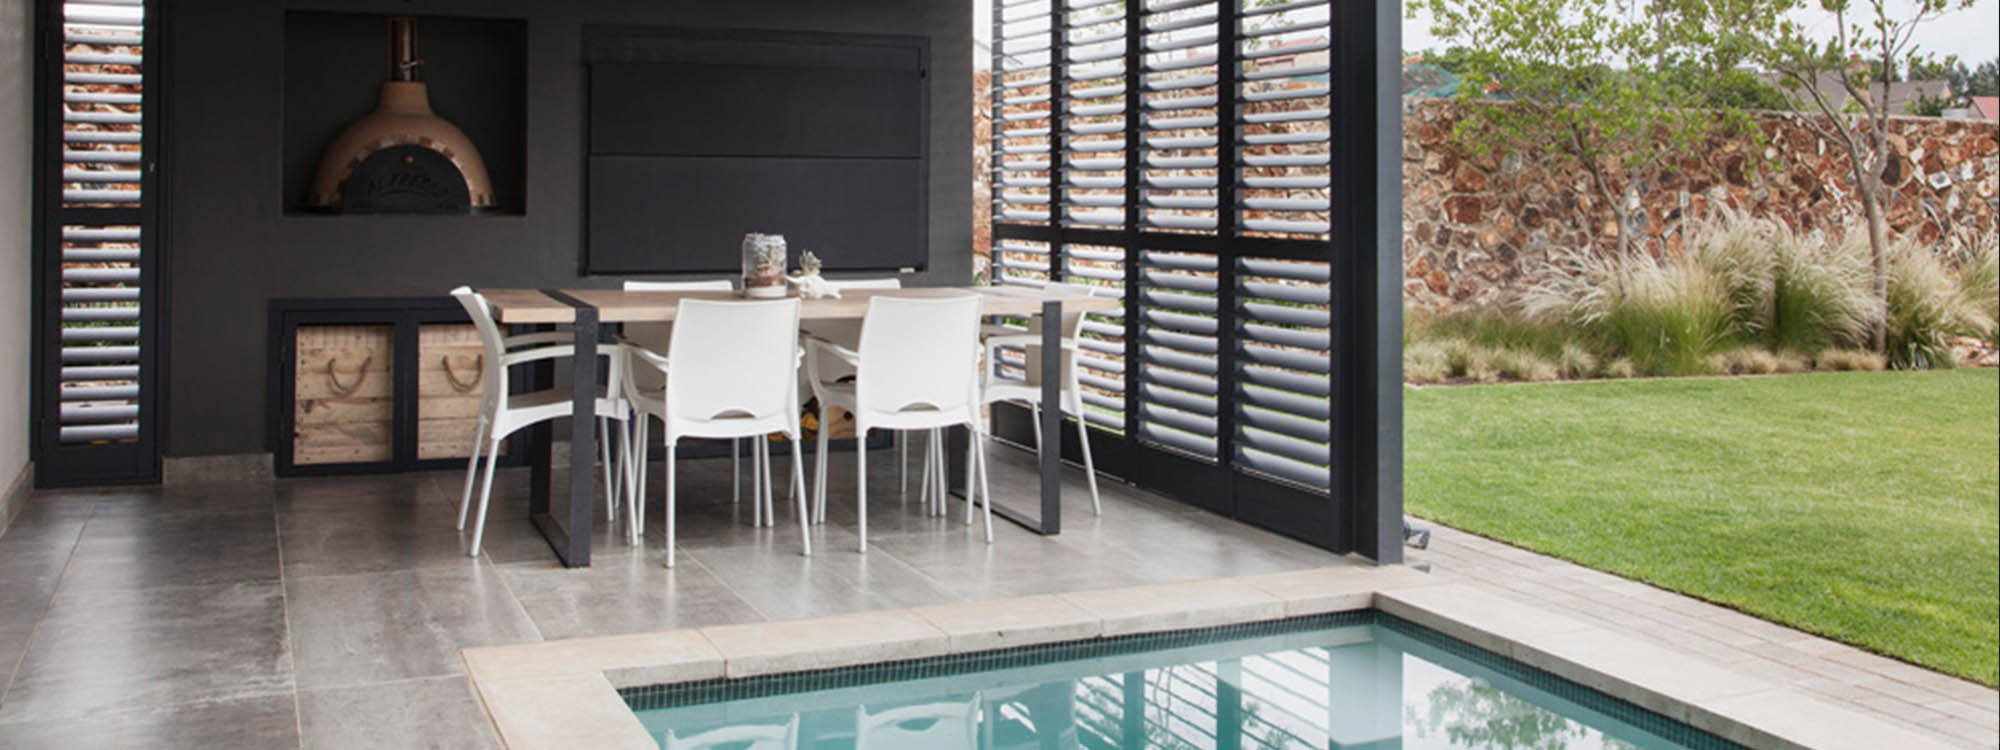 Security-shutters-living-pool